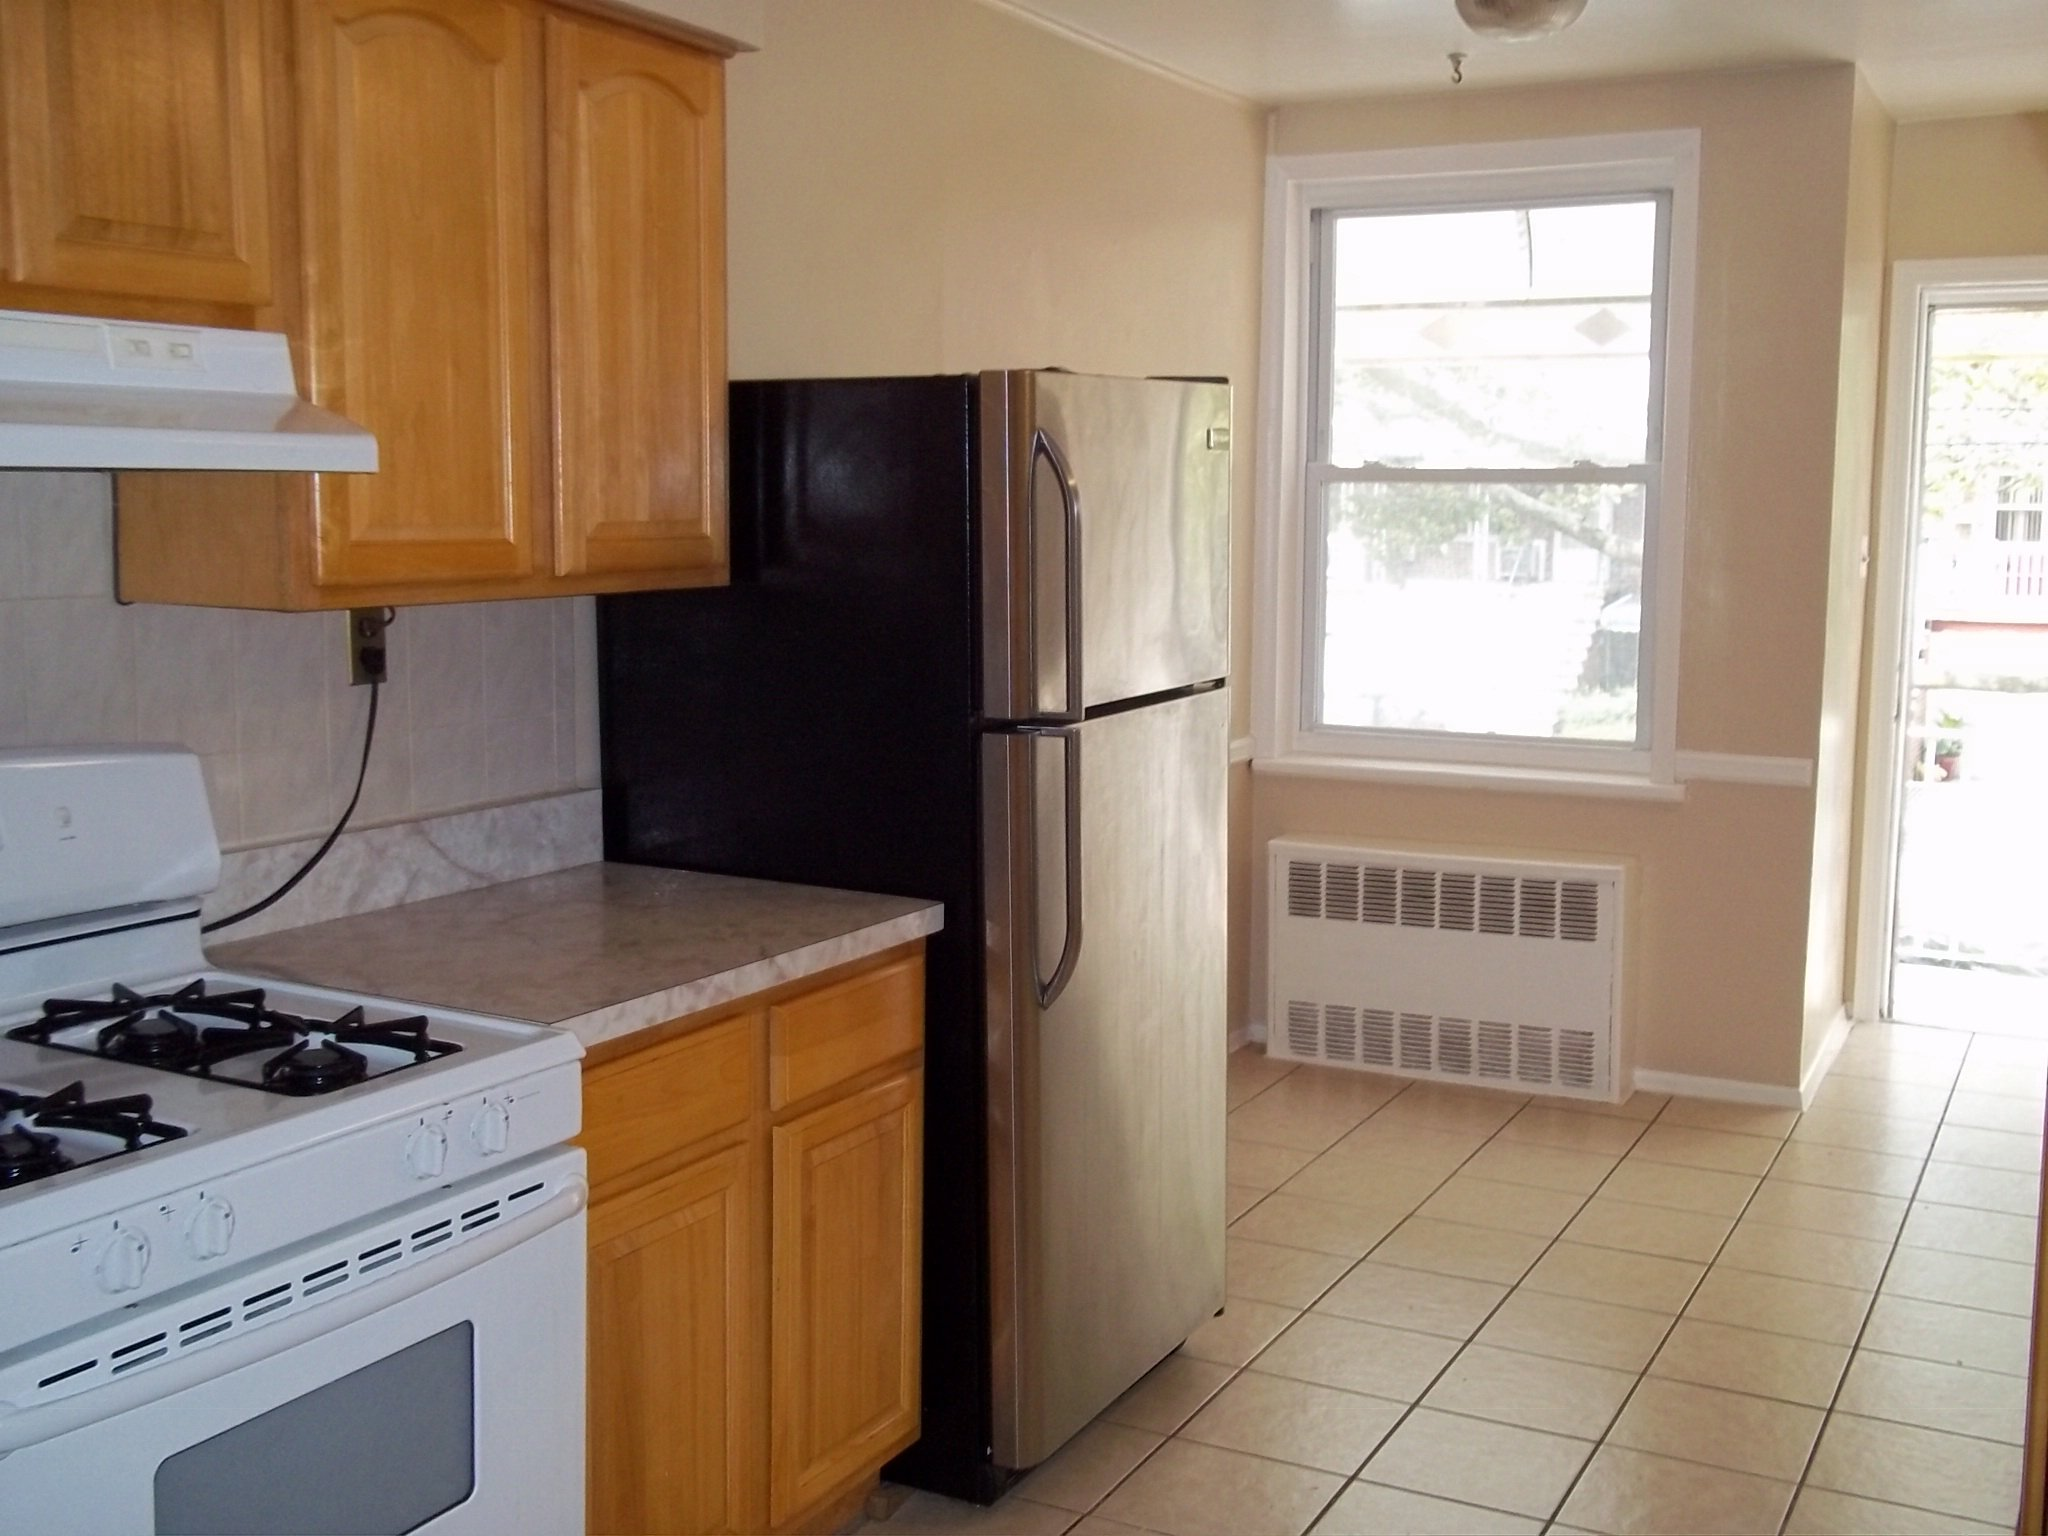 2 bedroom canarsie apartment for rent brooklyn crg3097 for 2 bedroom apartments for rent